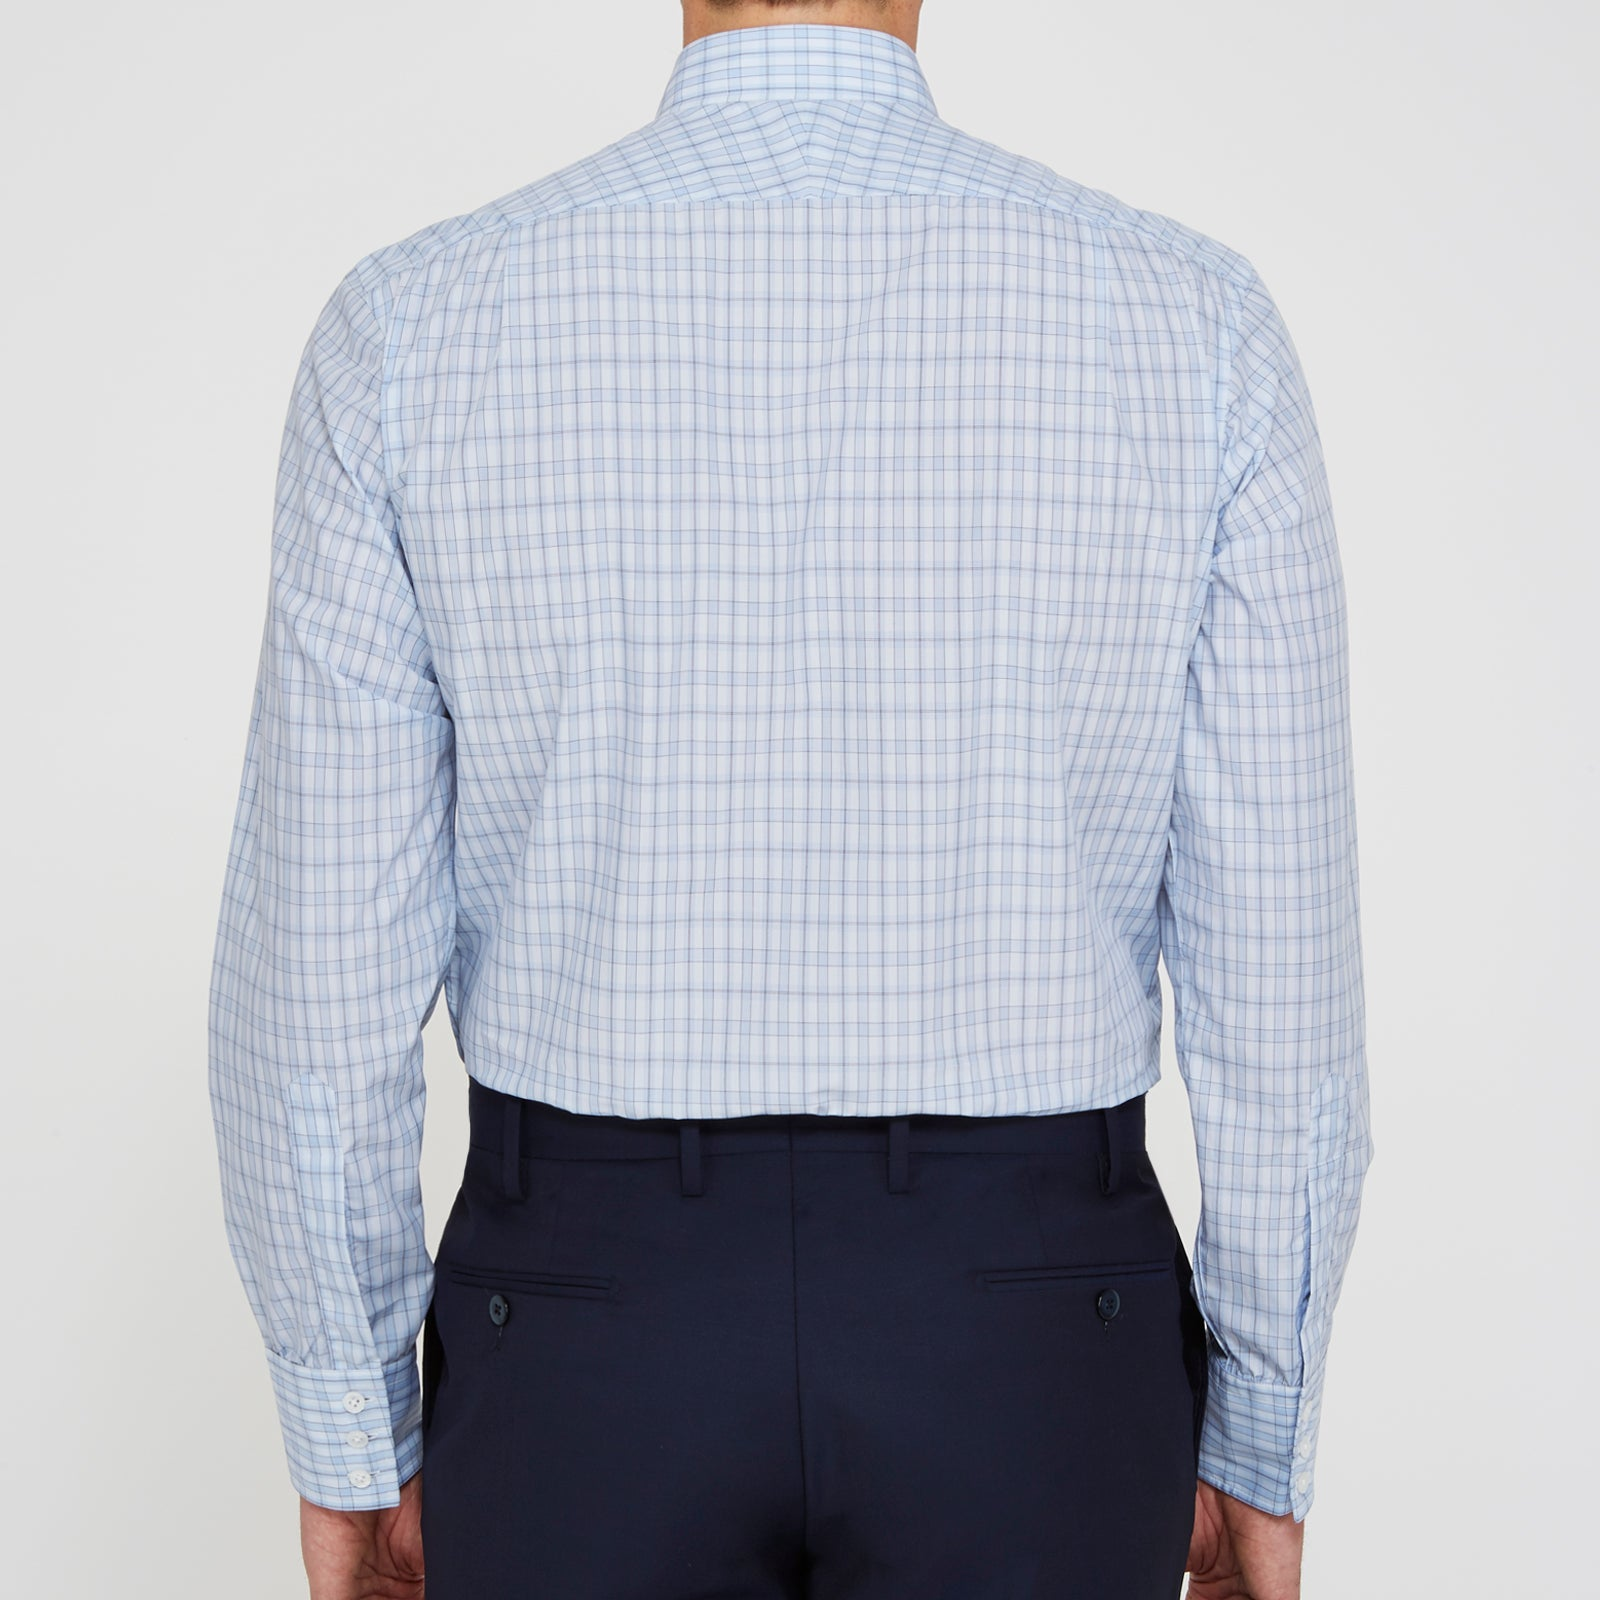 Exclusive Tonal Blue Fine Check Shirt with Classic T&A Collar